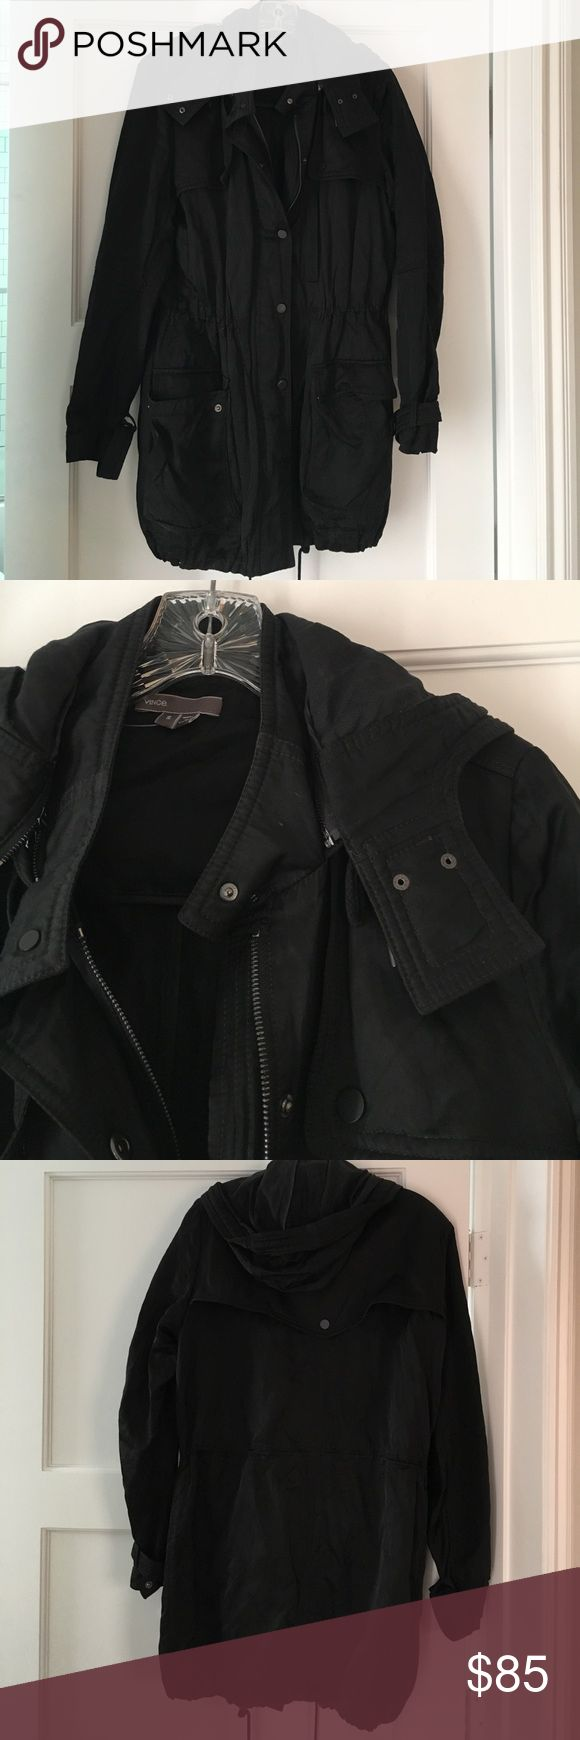 Vince black rain parka Black rain parka by Vince. Long modern fit . Missing a snap closure but it also zips up so not necessary . True to size Vince Jackets & Coats Utility Jackets